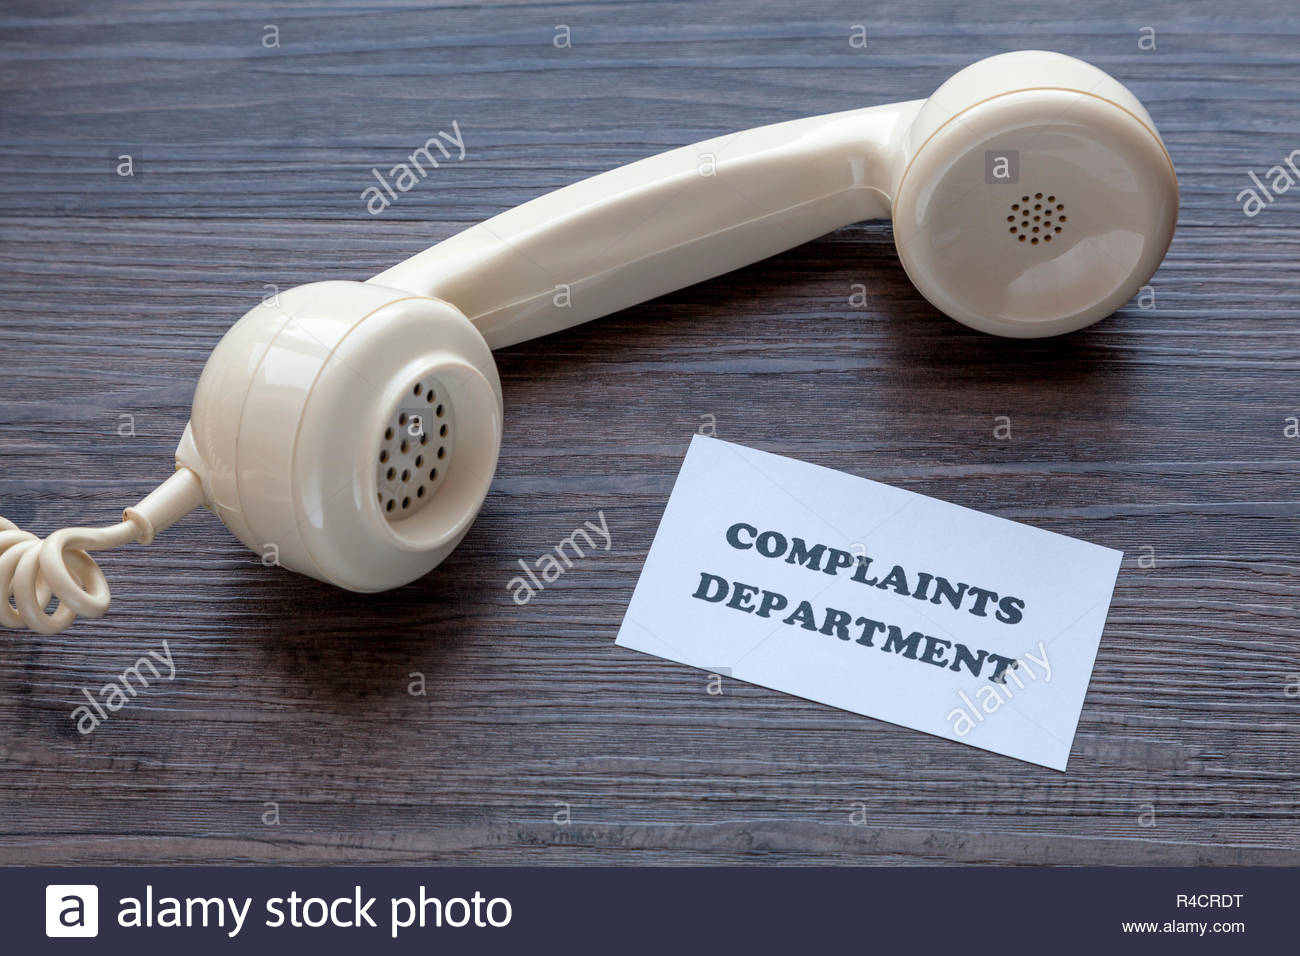 Classic telephone receiver with note - Complaints Department - Stock Image